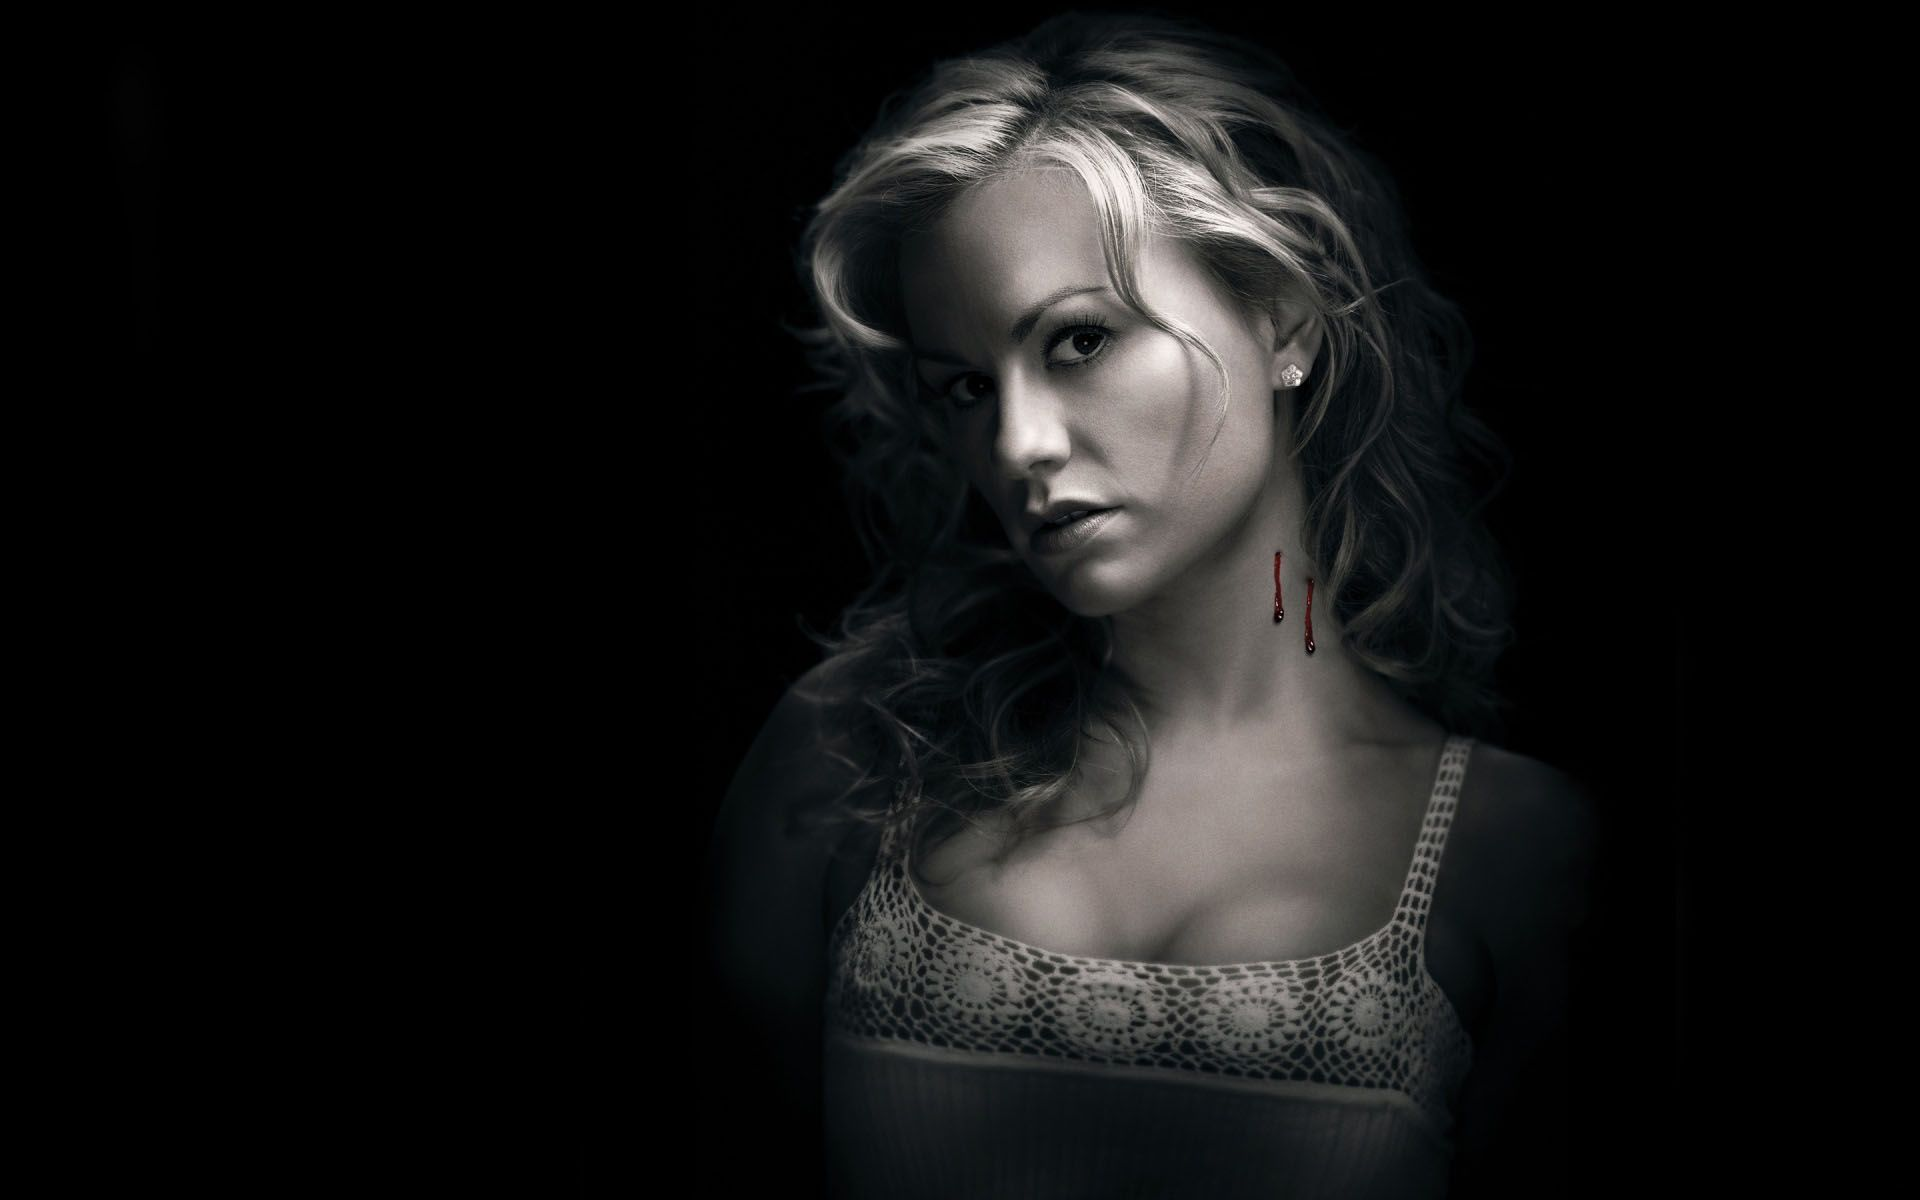 1920x1200 - Anna Paquin Wallpapers 31